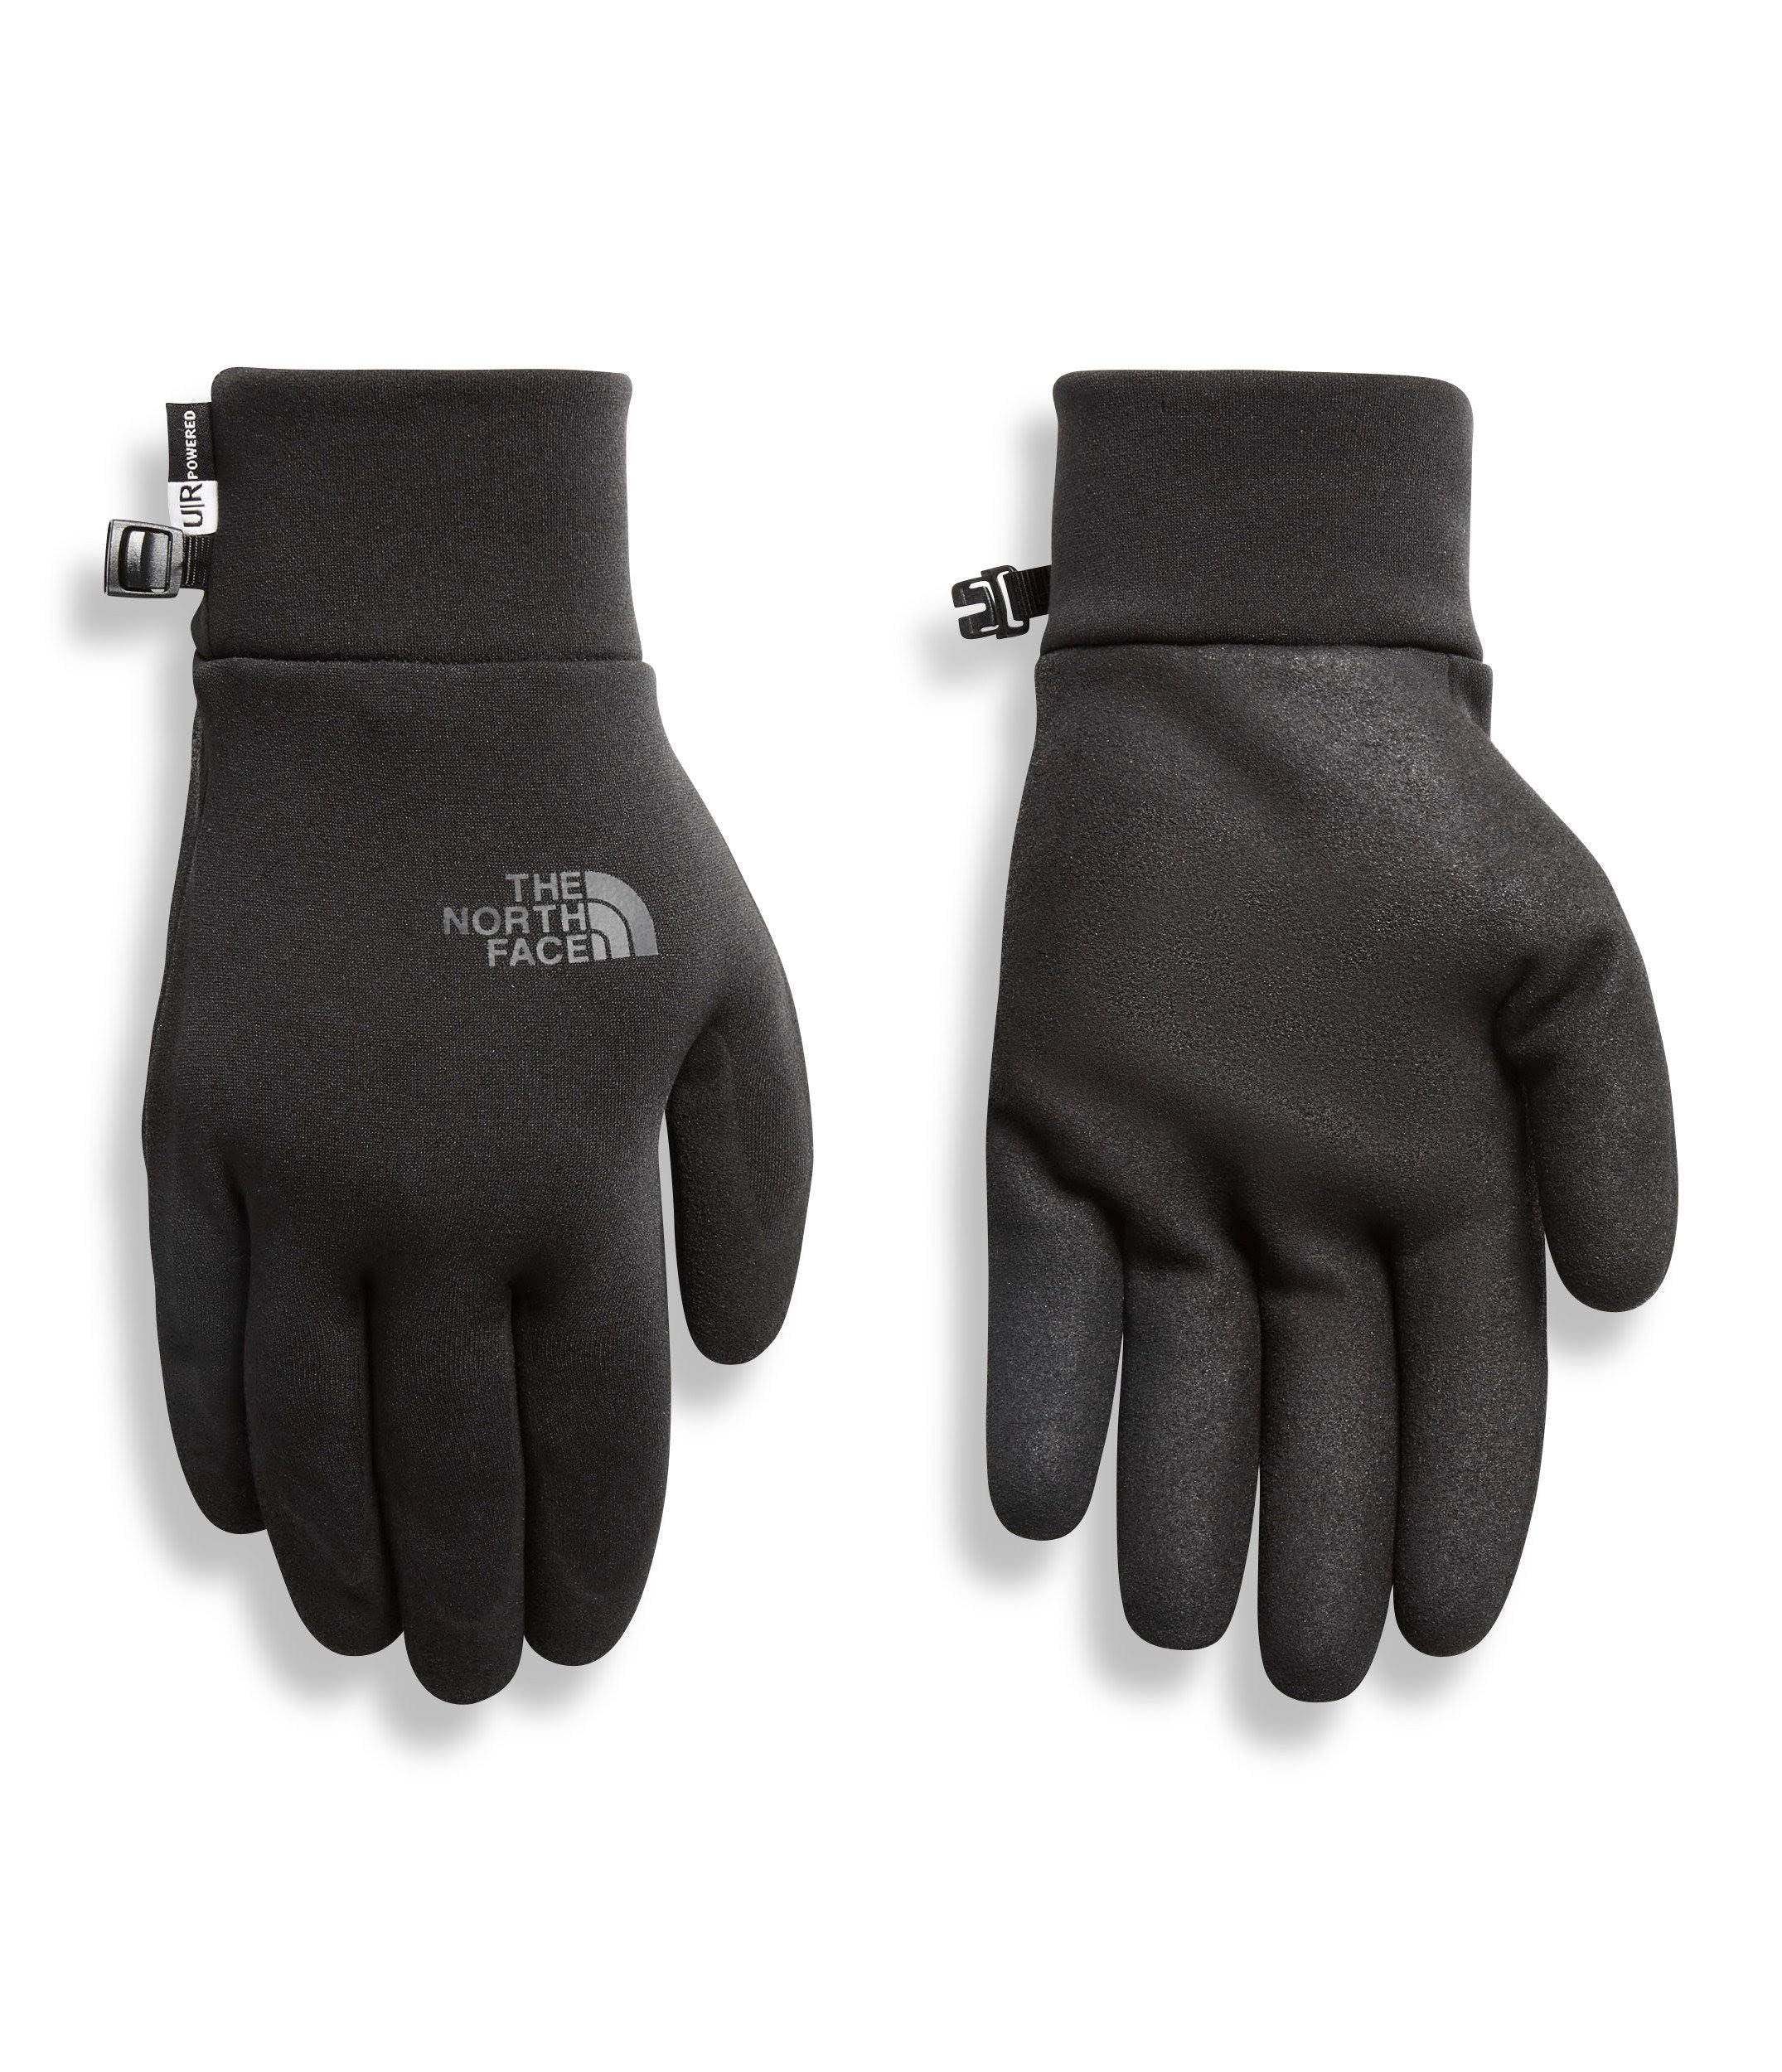 The North Face the North Face Women's Etip Gloves Black